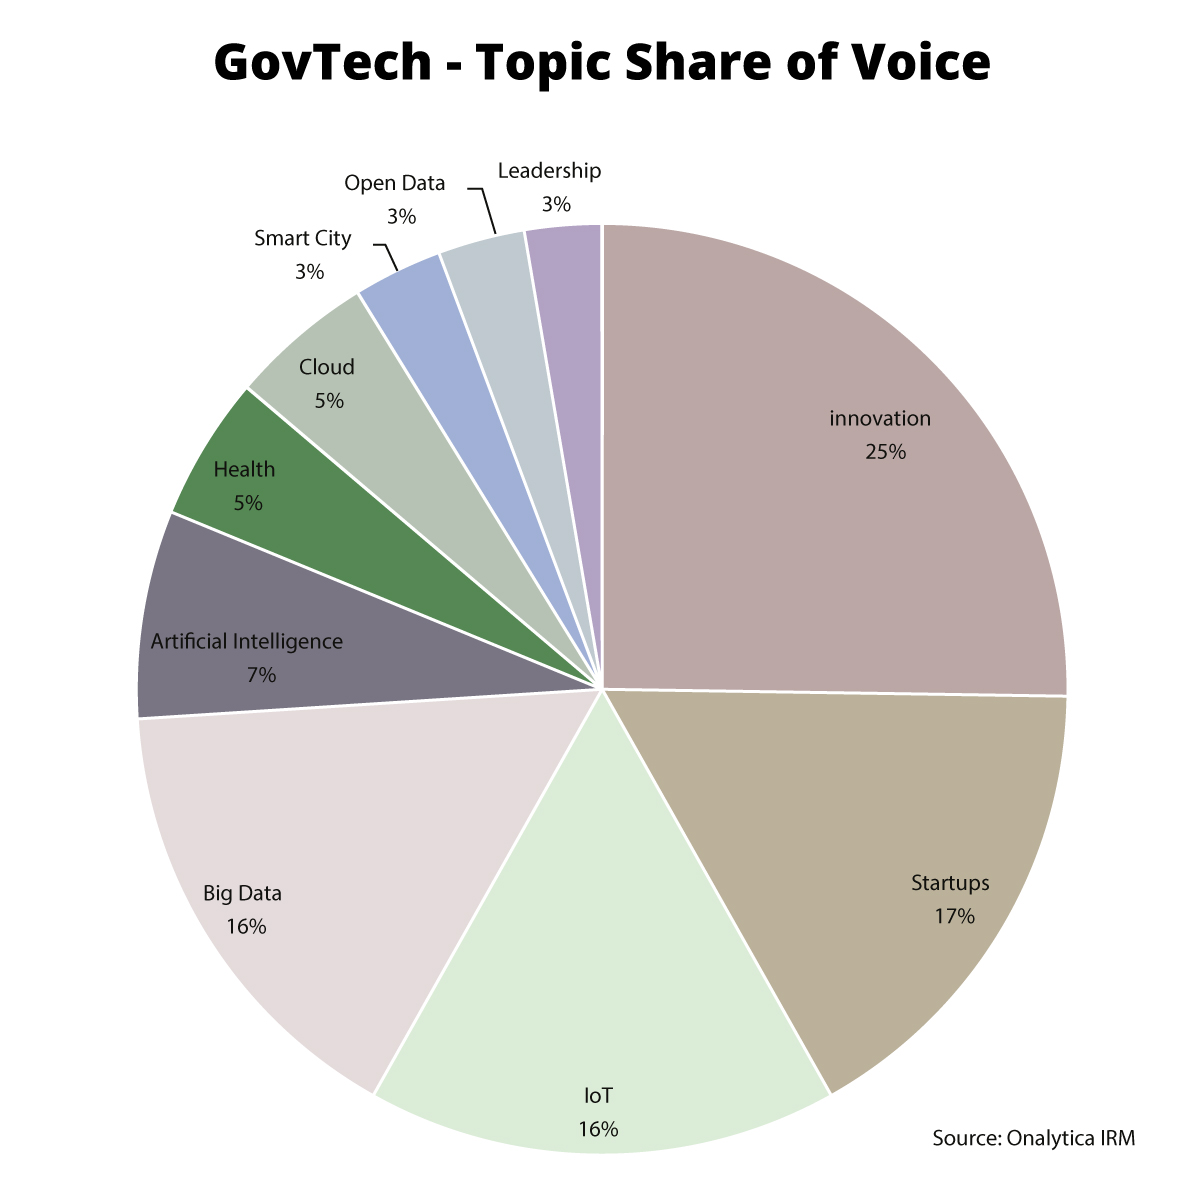 Topic analysis - which topics were spoken of the most in the context of GovTech, analysis of tweets and blogs from the top 100 influencers and brands between 1st January – 5th December 2016 and counting the number of times various topics were mentioned to create a topic share of voice pie chart.